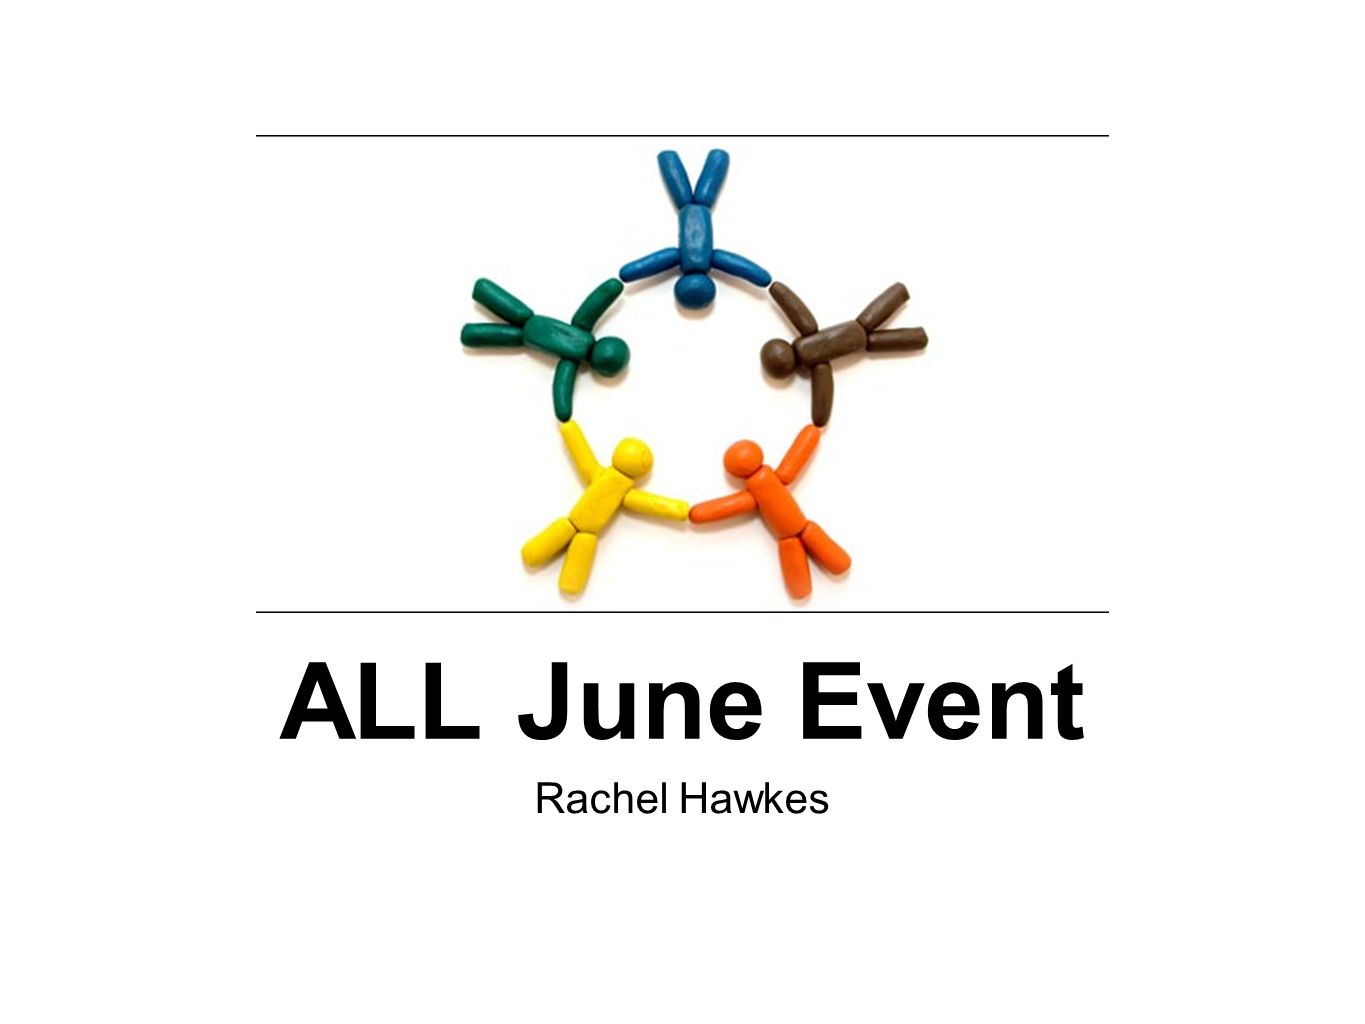 Ideas 1. ALL June Event Rachel Hawkes